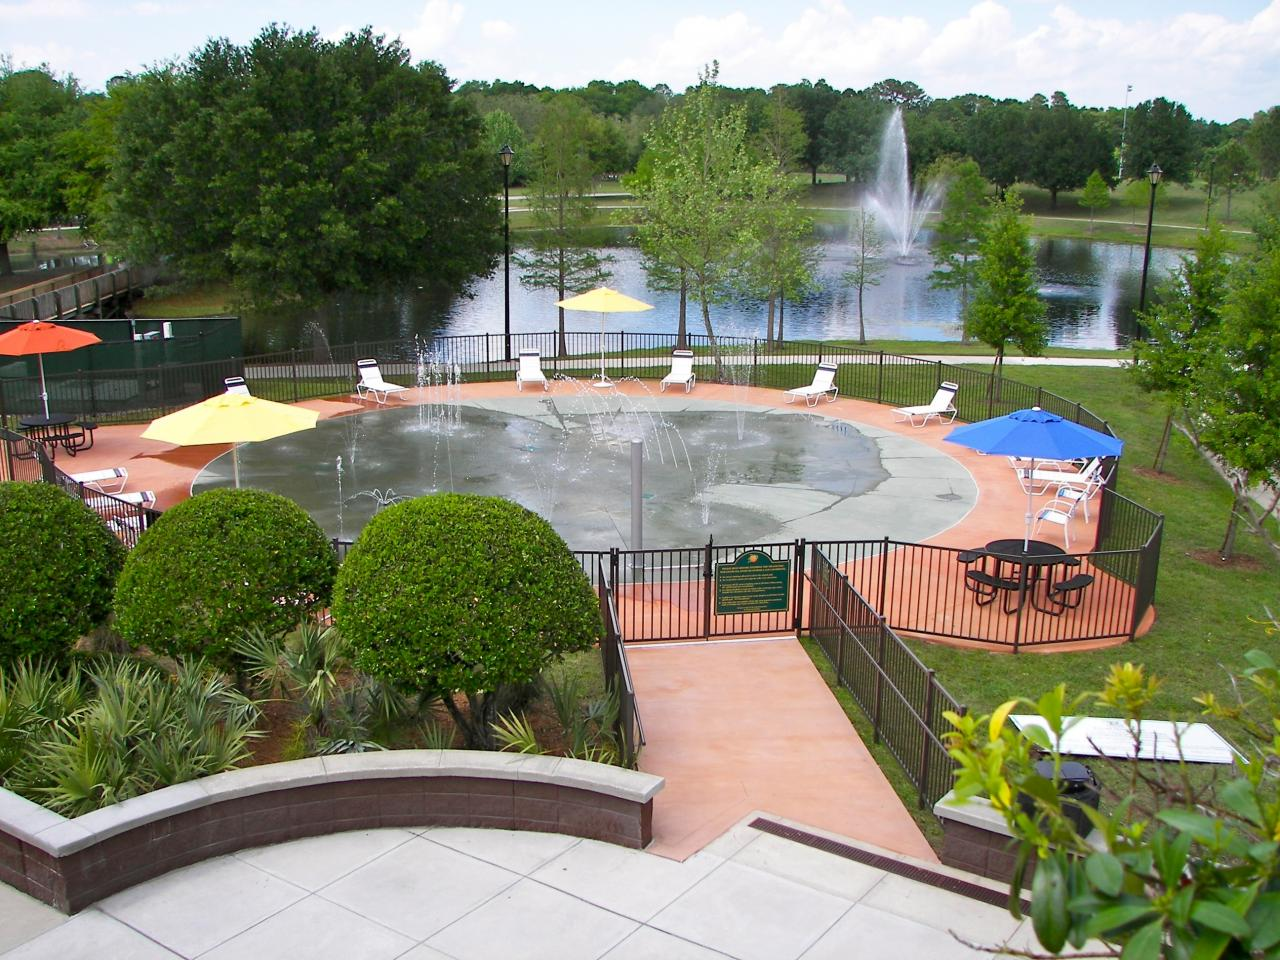 Barnett Park Splash Pad - Photo via www.orlandomagicocflgyms.net